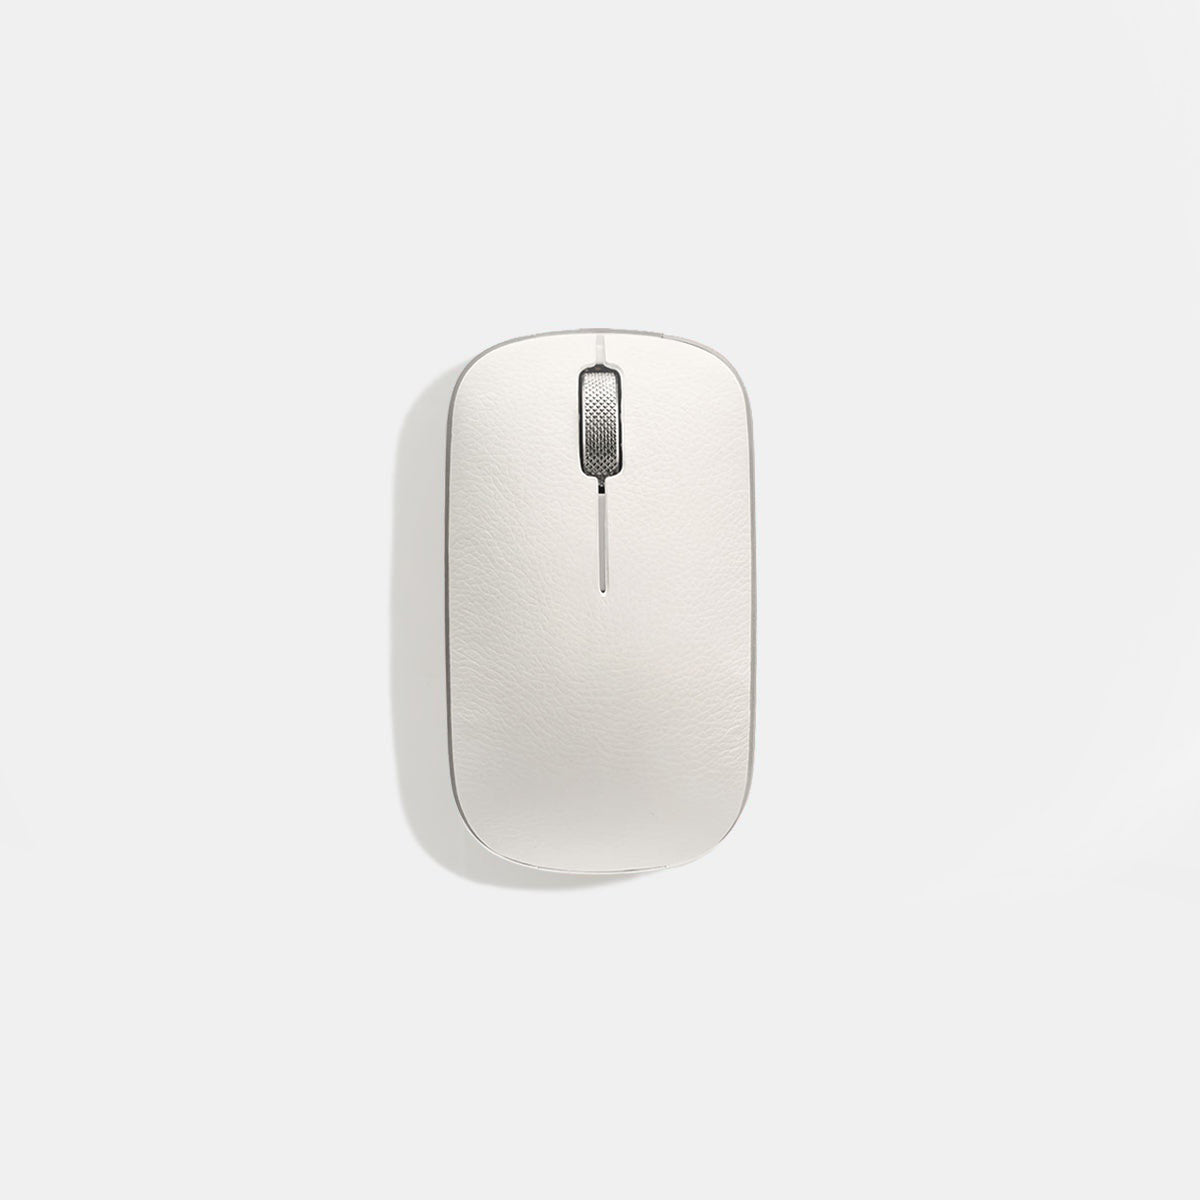 RETRO CLASSIC MOUSE (JAPANESE VERSION)